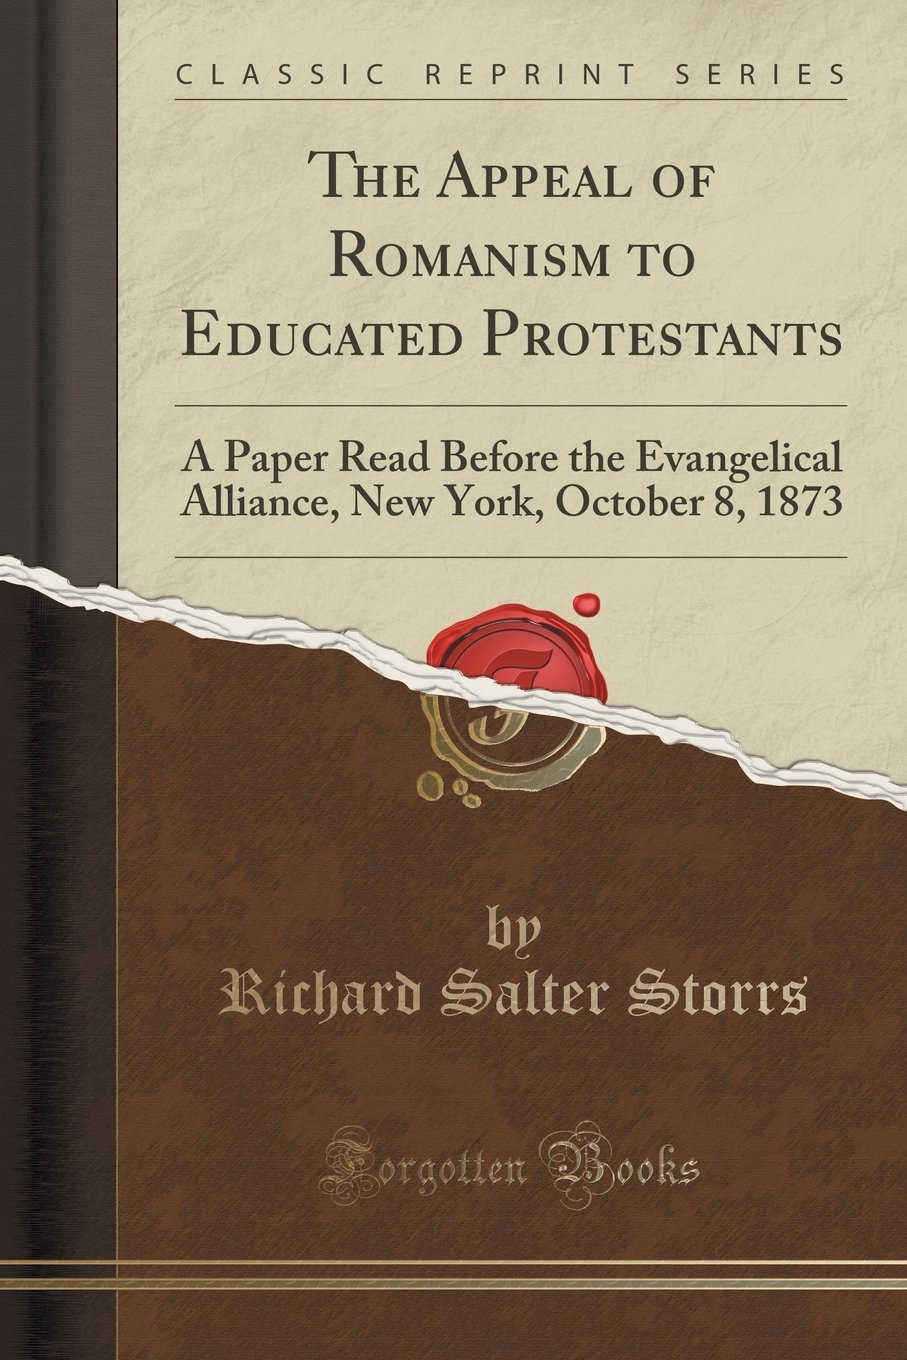 The Appeal of Romanism to Educated Protestants: A Paper Read Before the Evangelical Alliance, New York, October 8, 1873 (Classic Reprint) pdf